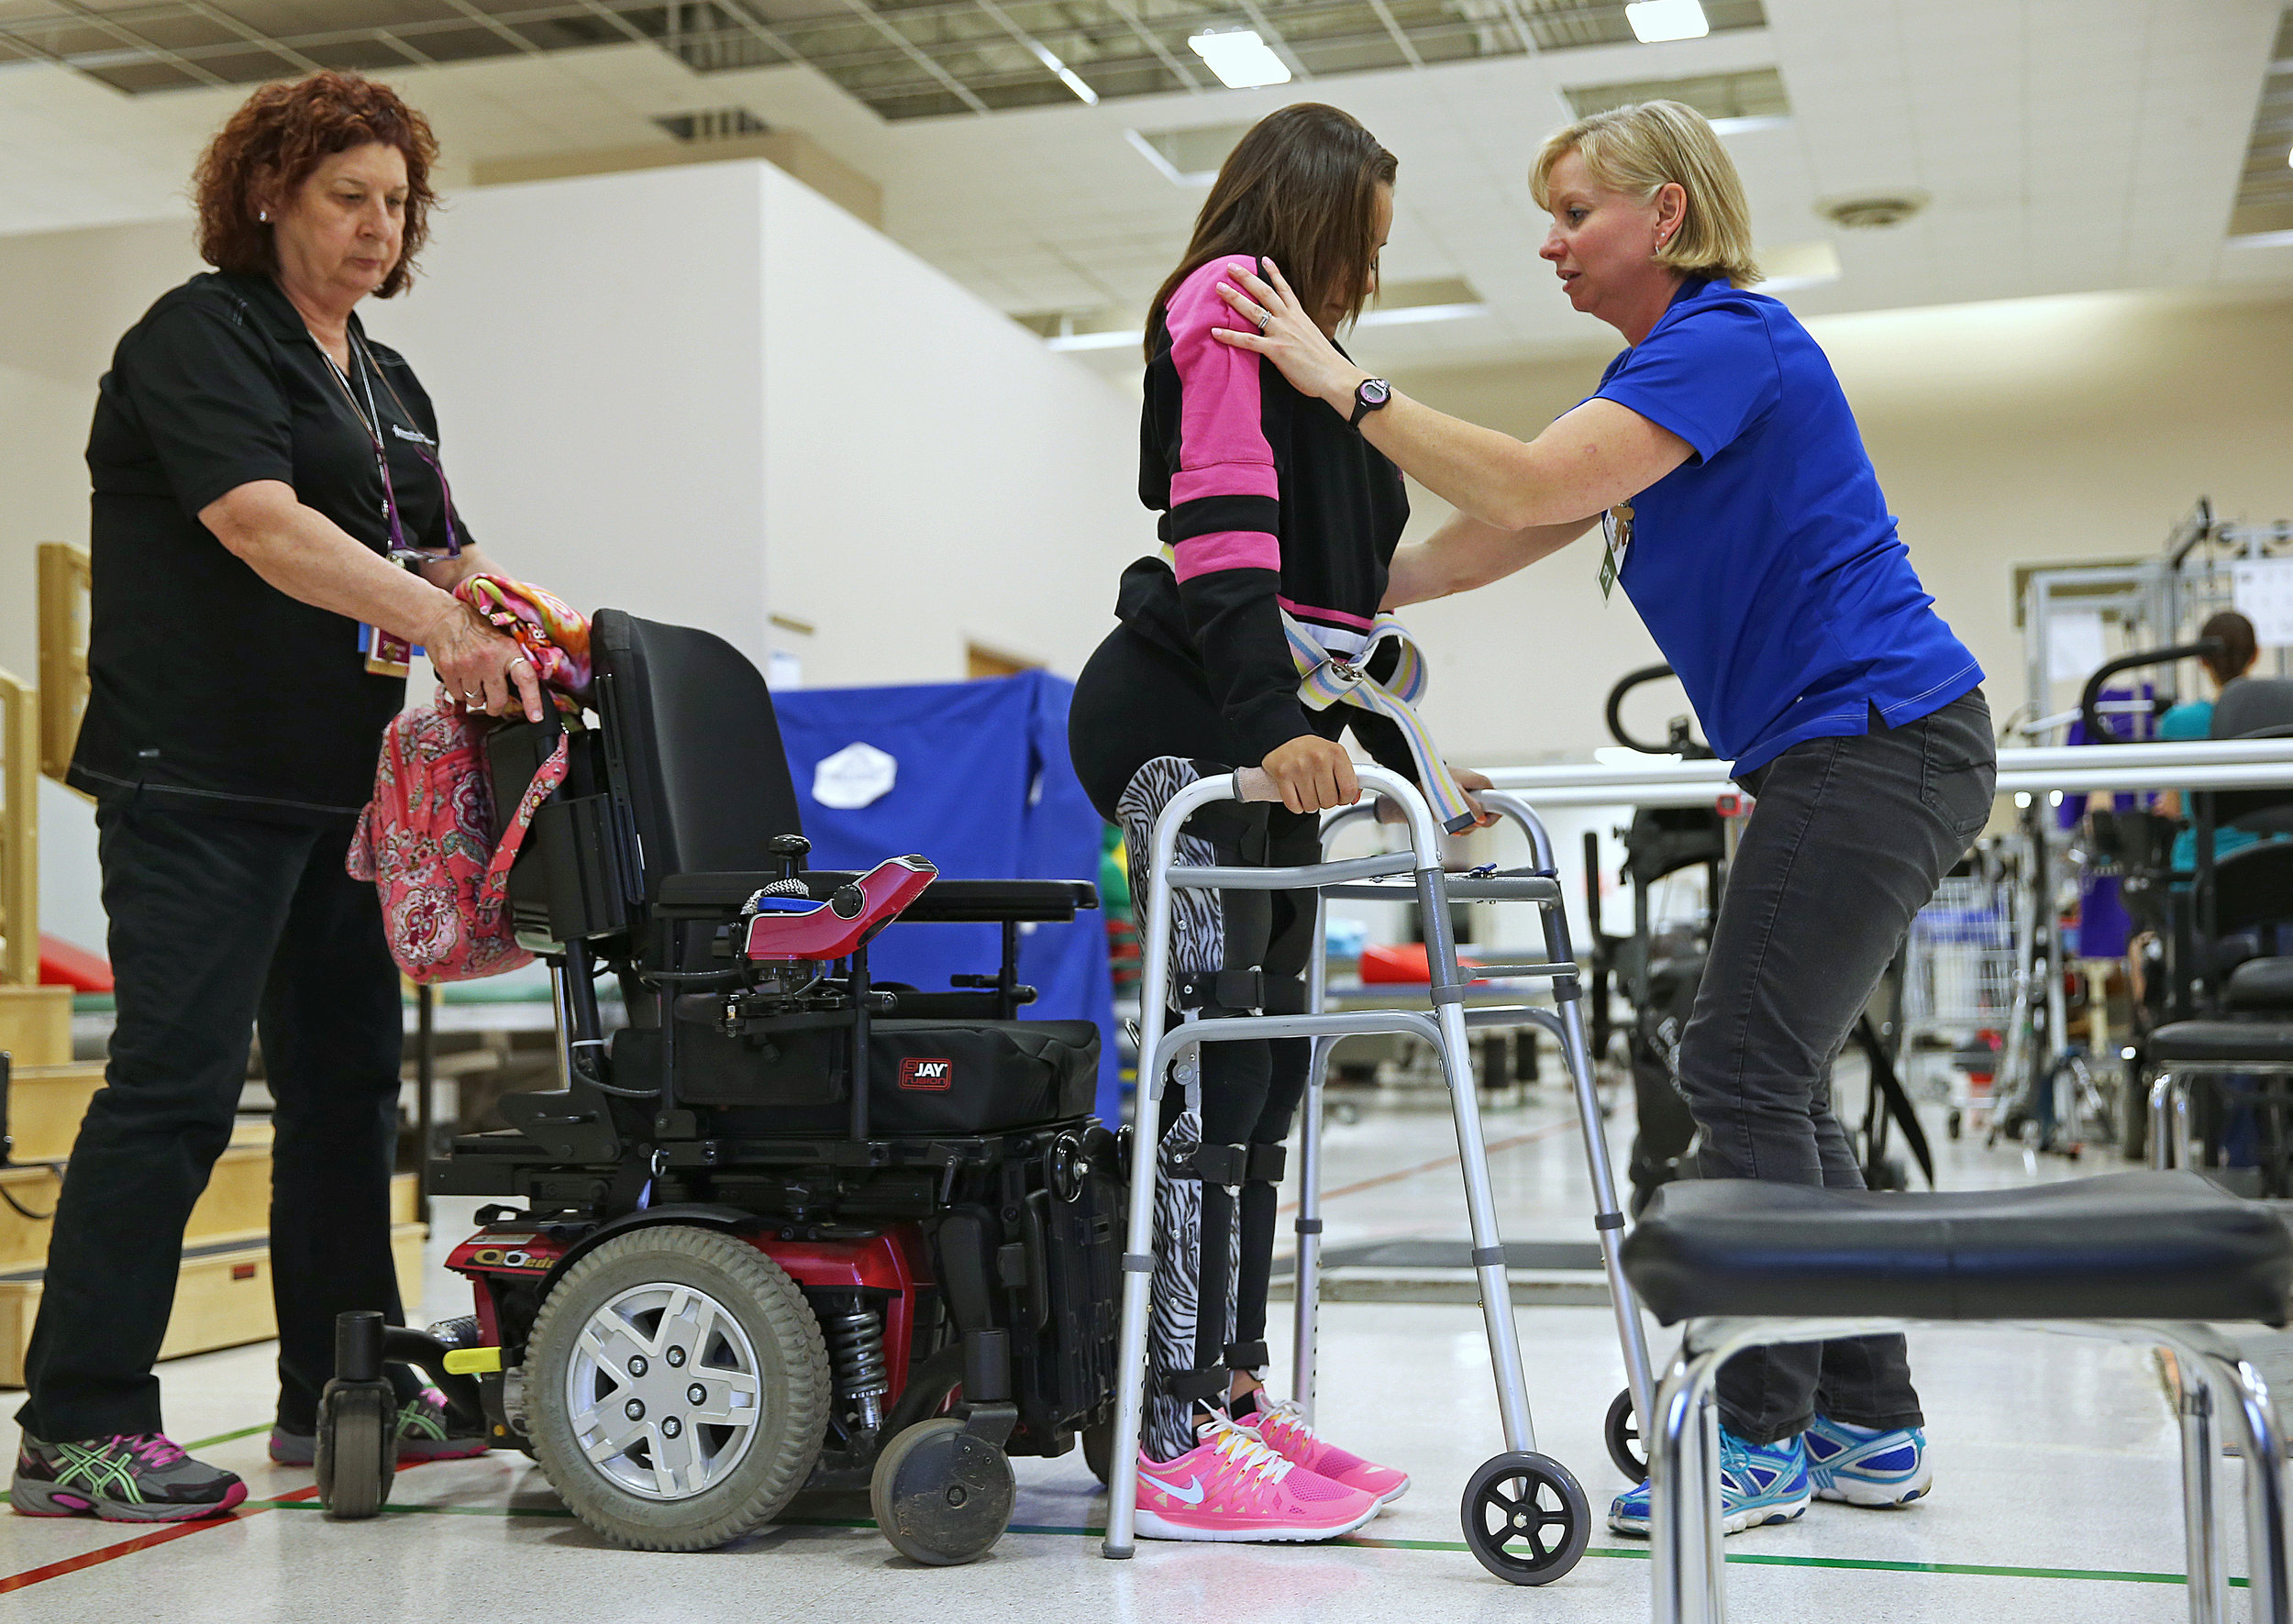 Physical therapist Kim Deckman (right) helps Macy Huff (center) into leg braces before a session at the Rehabilitation Hospital of Indiana in May. Huff attended the rehabilitation sessions twice a week in preparation for hight school graduation. Each session, she walked increasing distances with Deckman's assistance, leg braces and a walker.